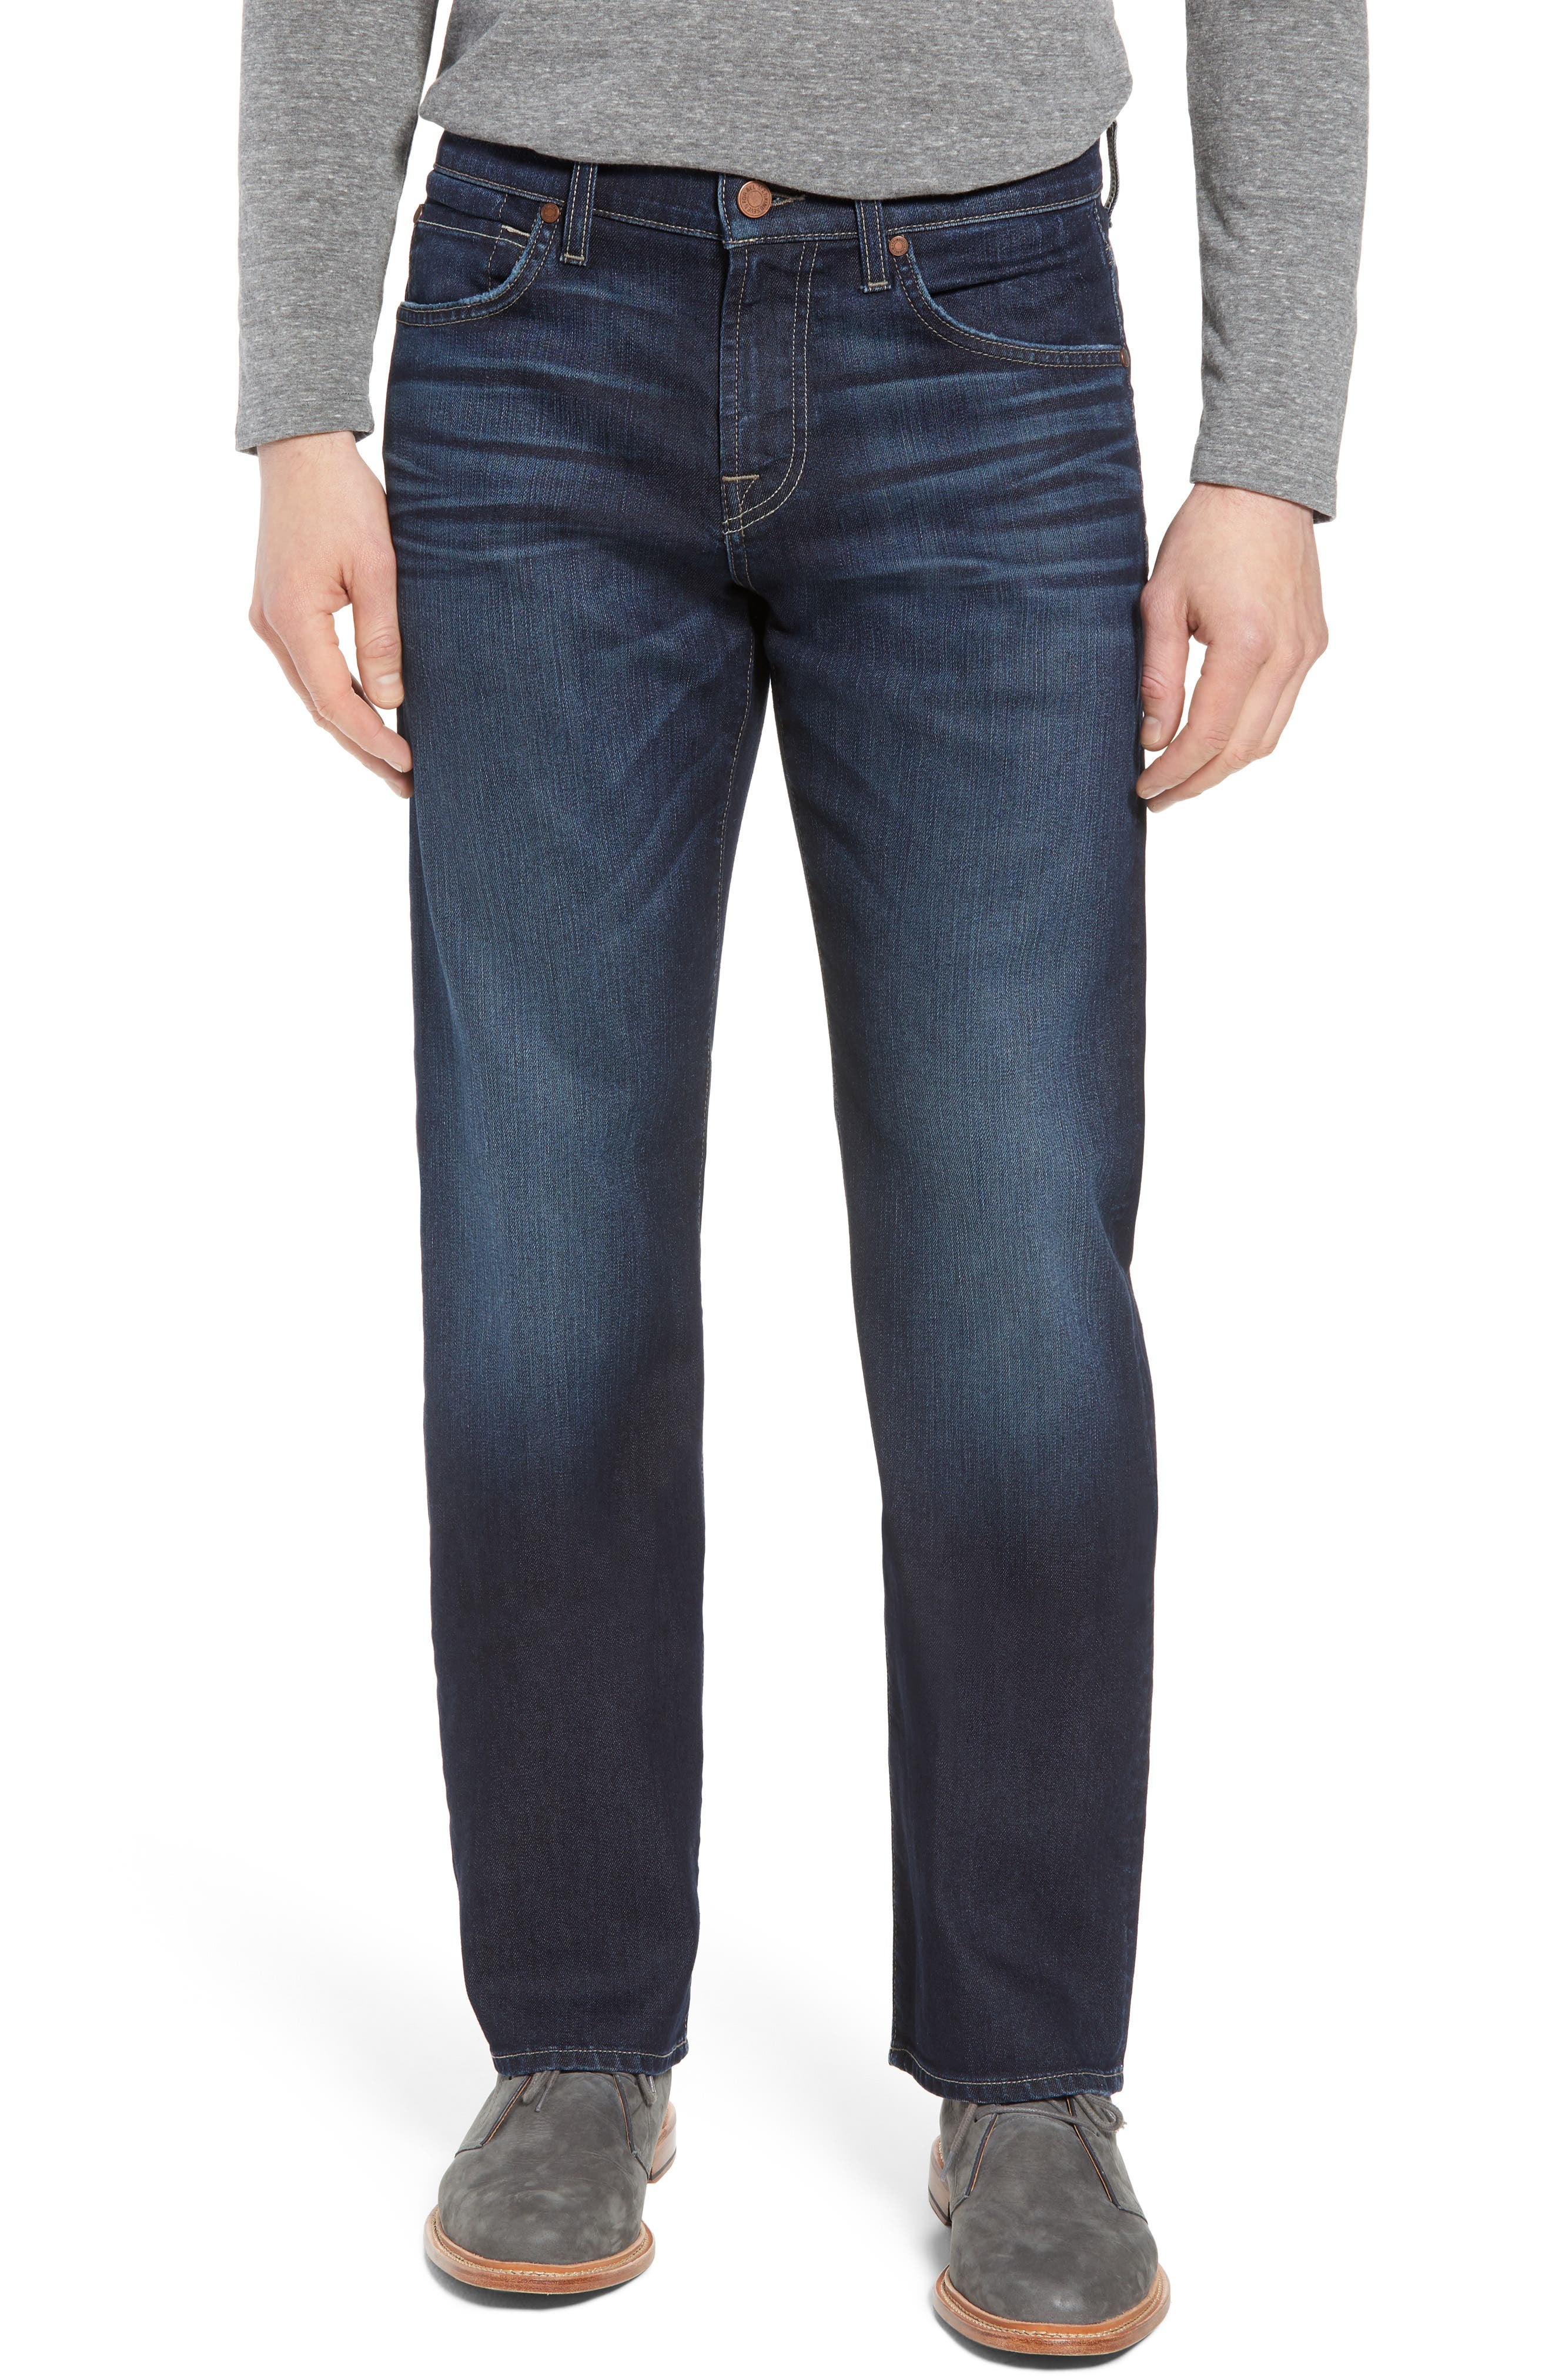 Airweft Austyn Relaxed Straight Leg Jeans,                         Main,                         color, 406